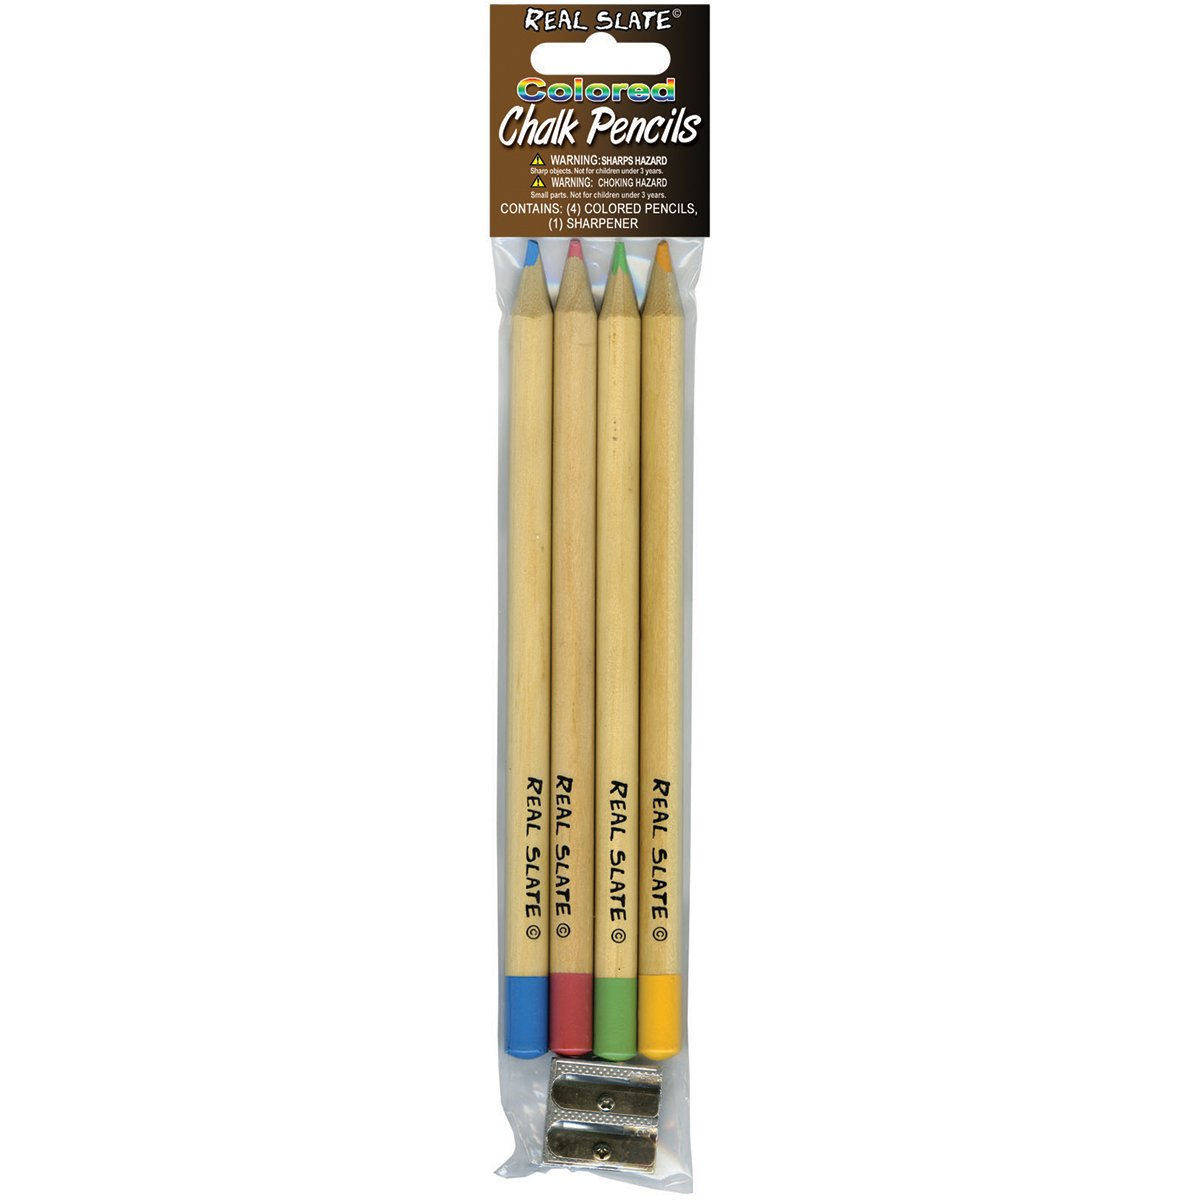 Multicolor Pepperell SLTCLK02 Real Slate Colored 4 Chalk Pencils with Sharpener